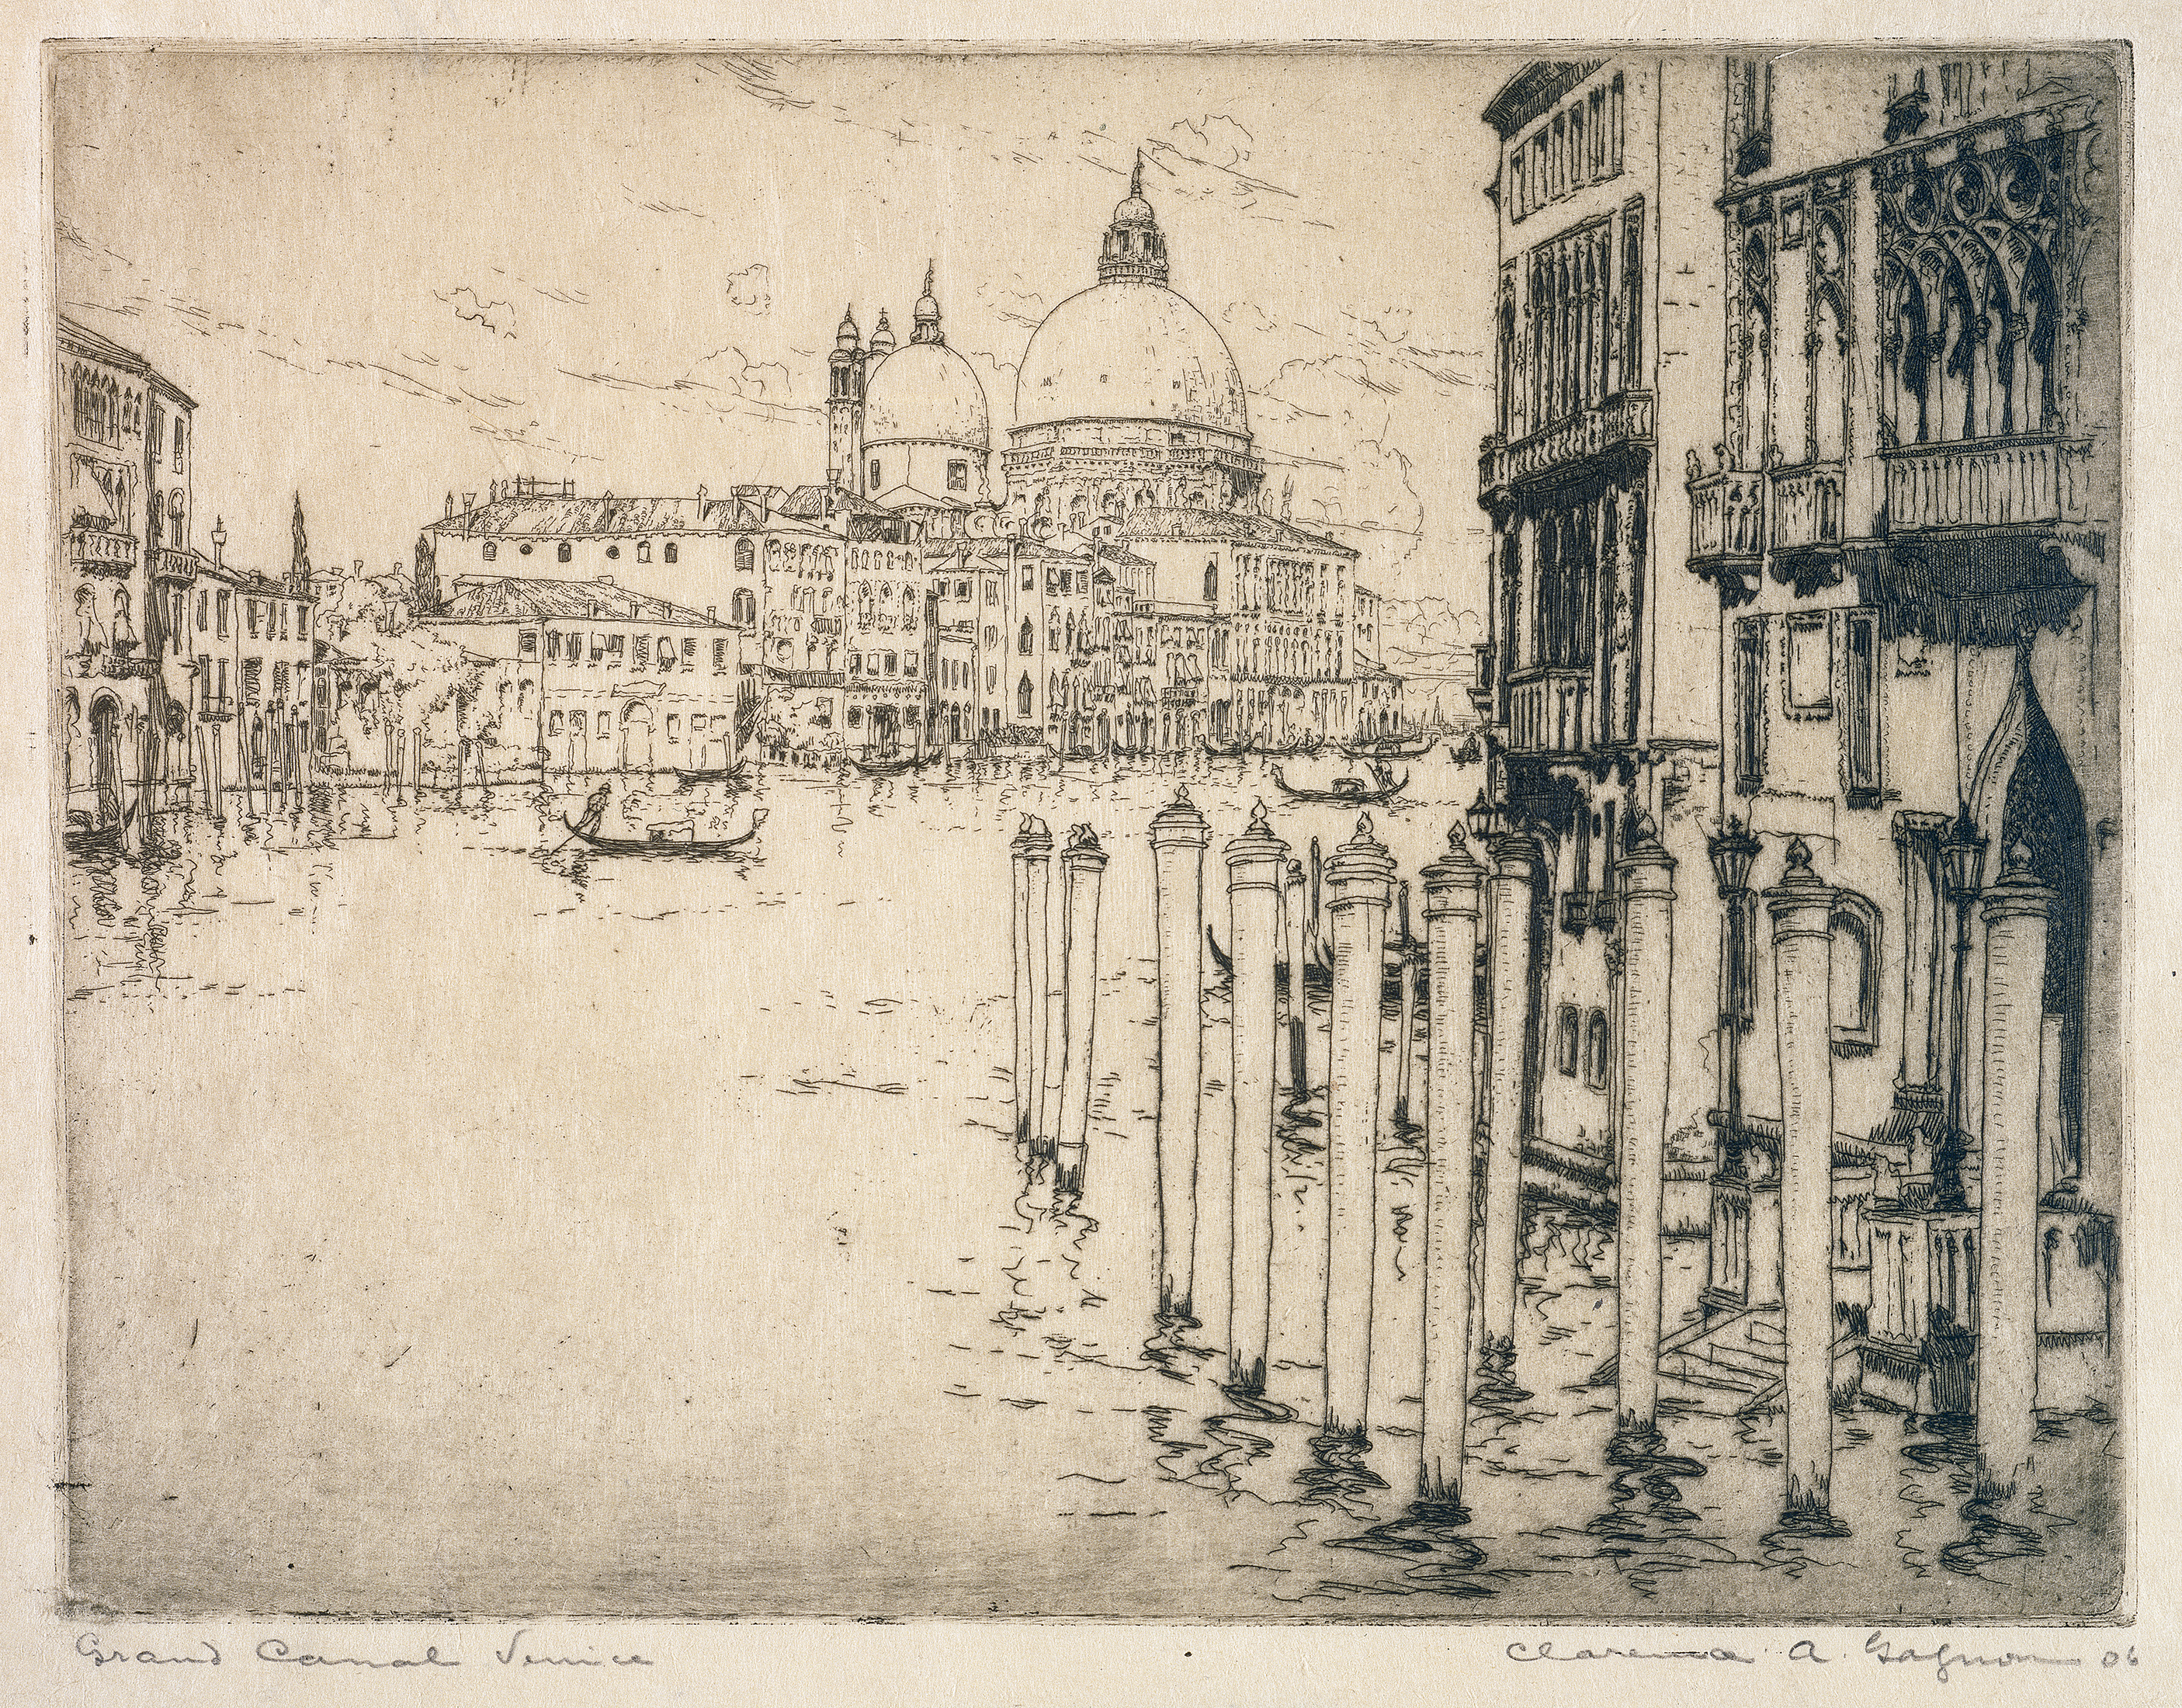 This black-and-white etching presents a view of the Grand Canal in Venice bordered by Gothic, classical and Baroque architecture. In the distance, a gondola glides along the water.